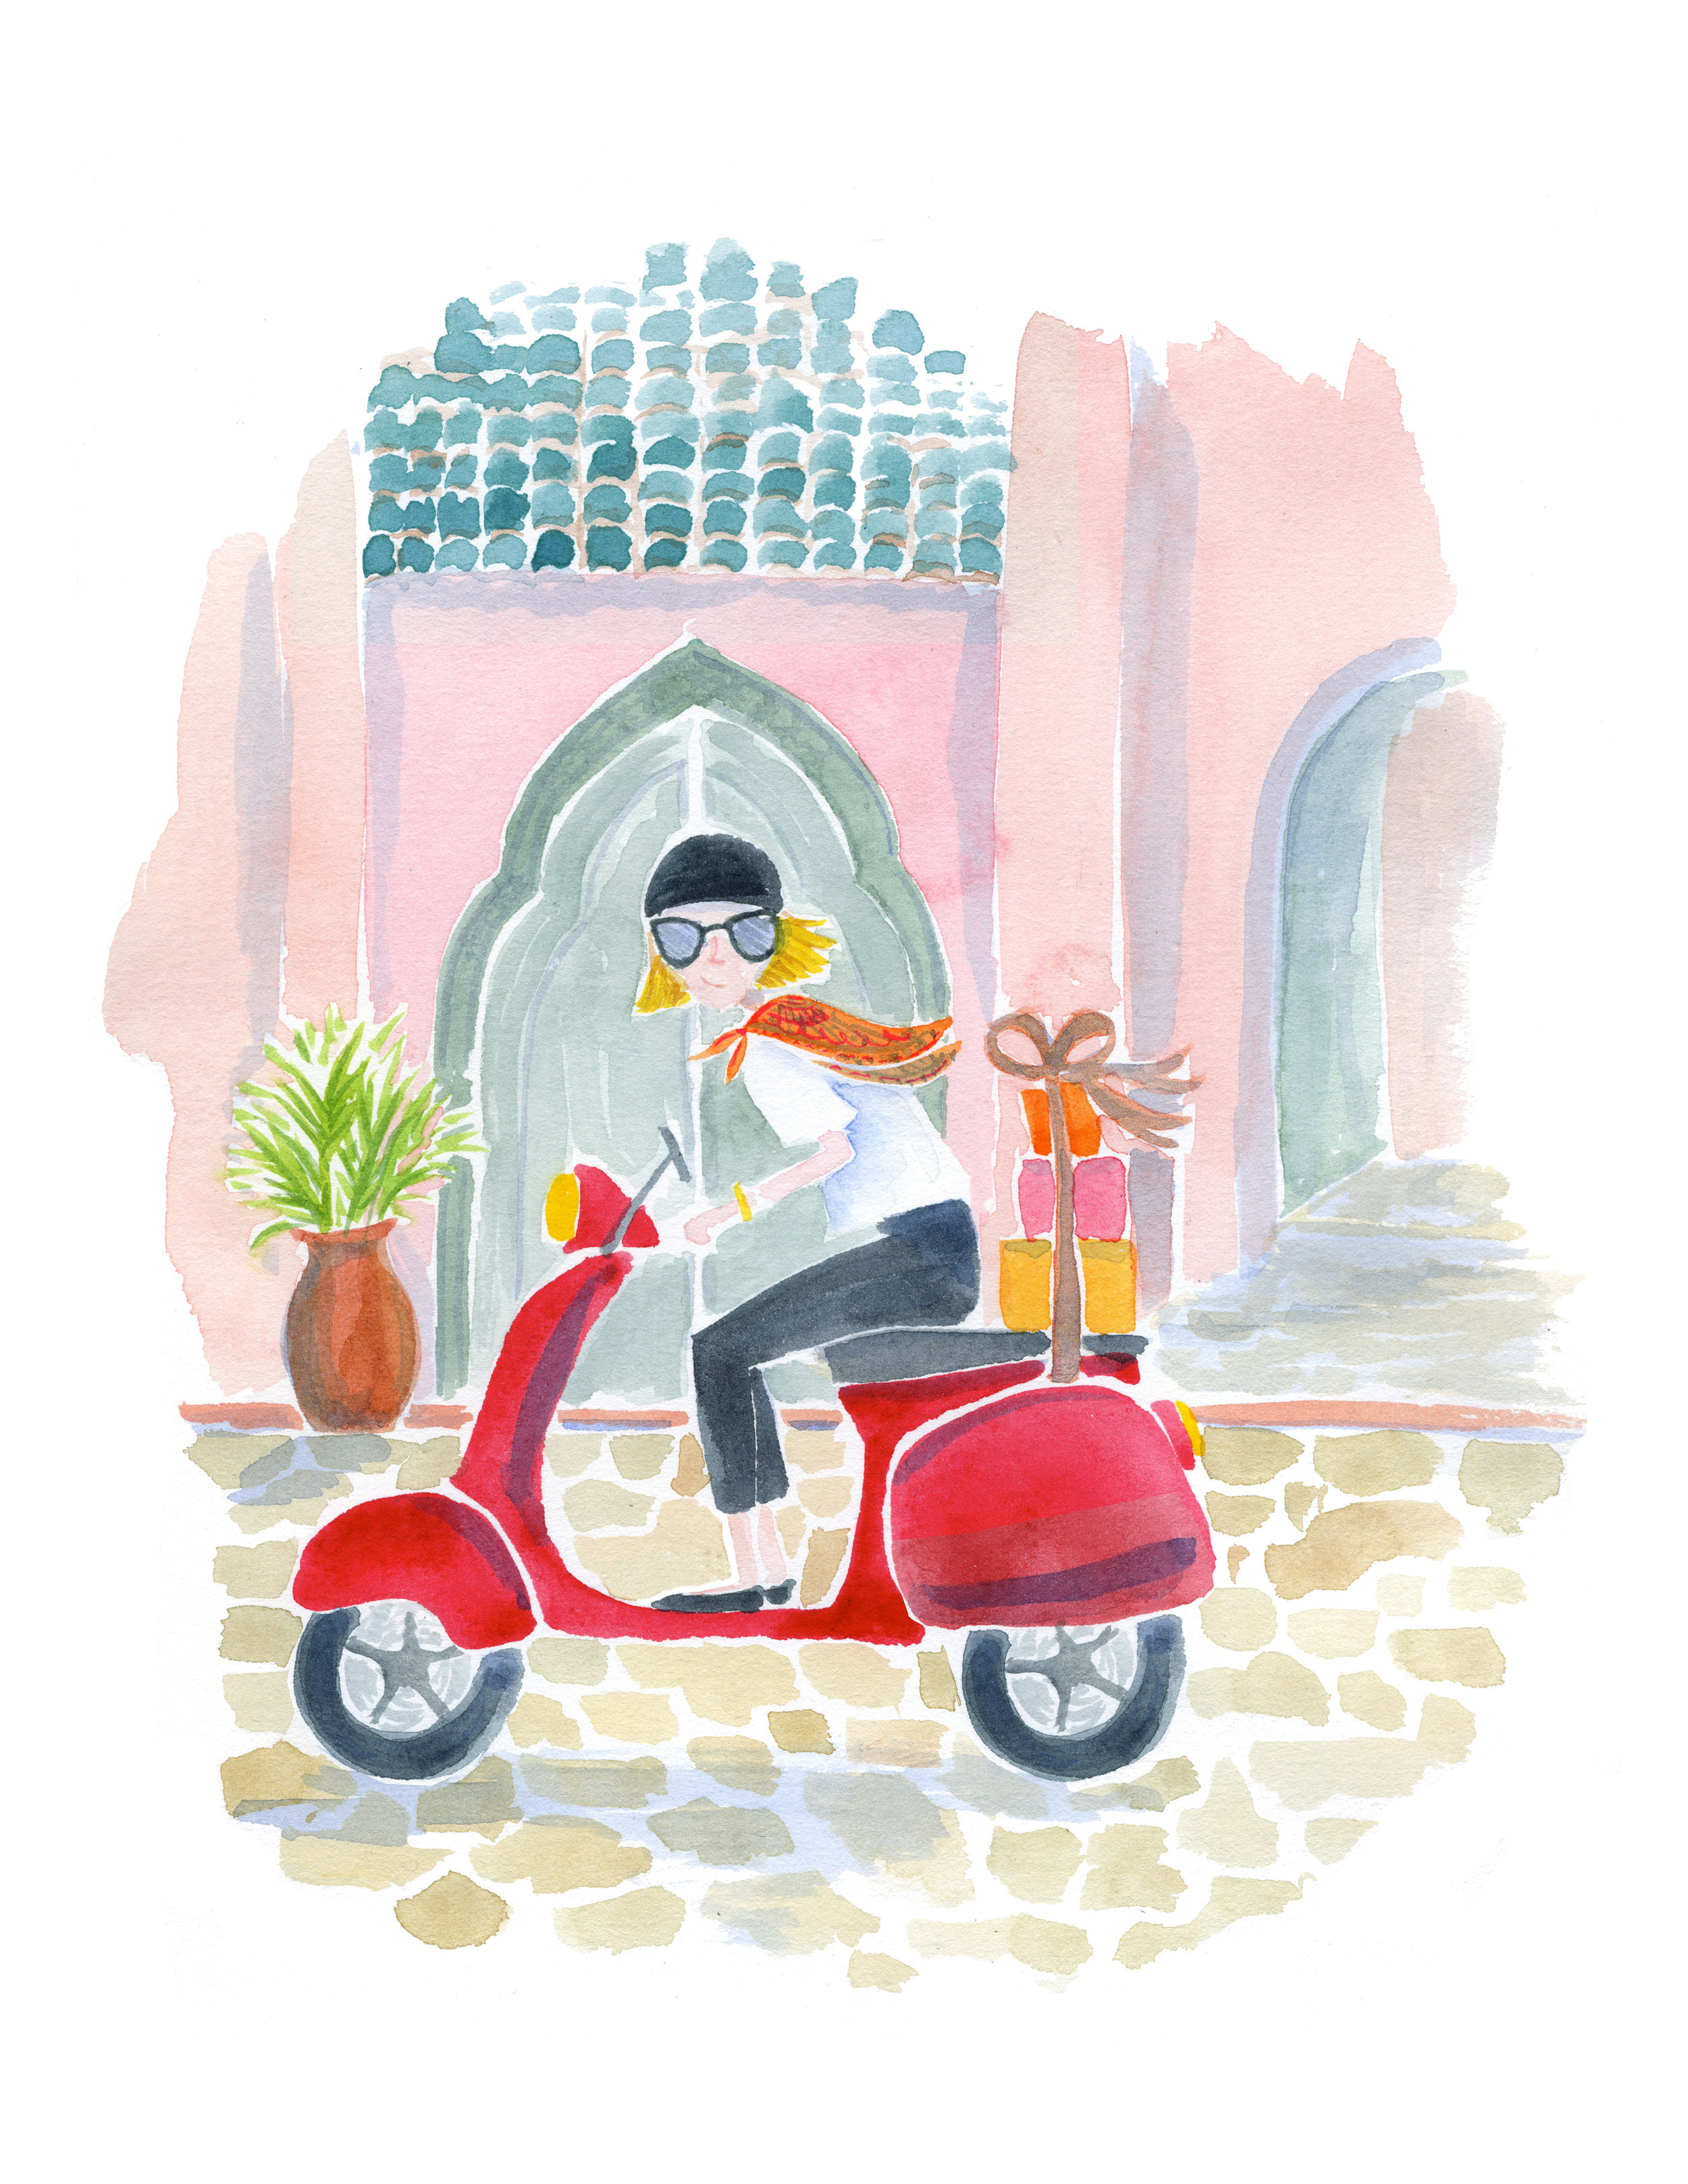 The Frances Flair Illustrations - Morocco.jpg